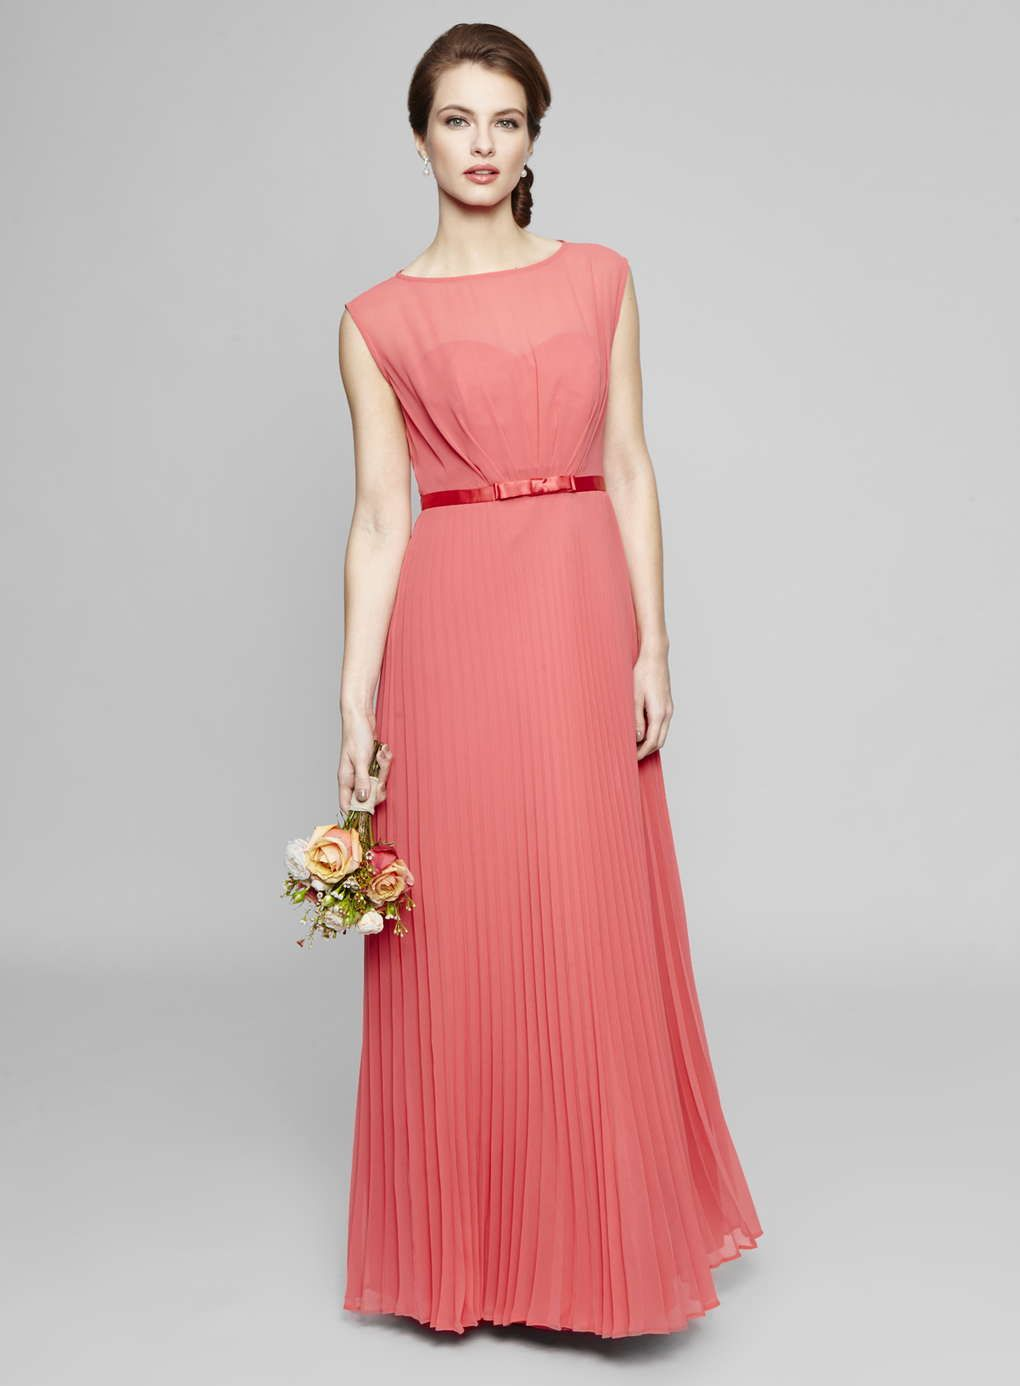 Deep Coral Primrose Pleated Skirt Bridesmaid Dress - BHS | Wedding ...